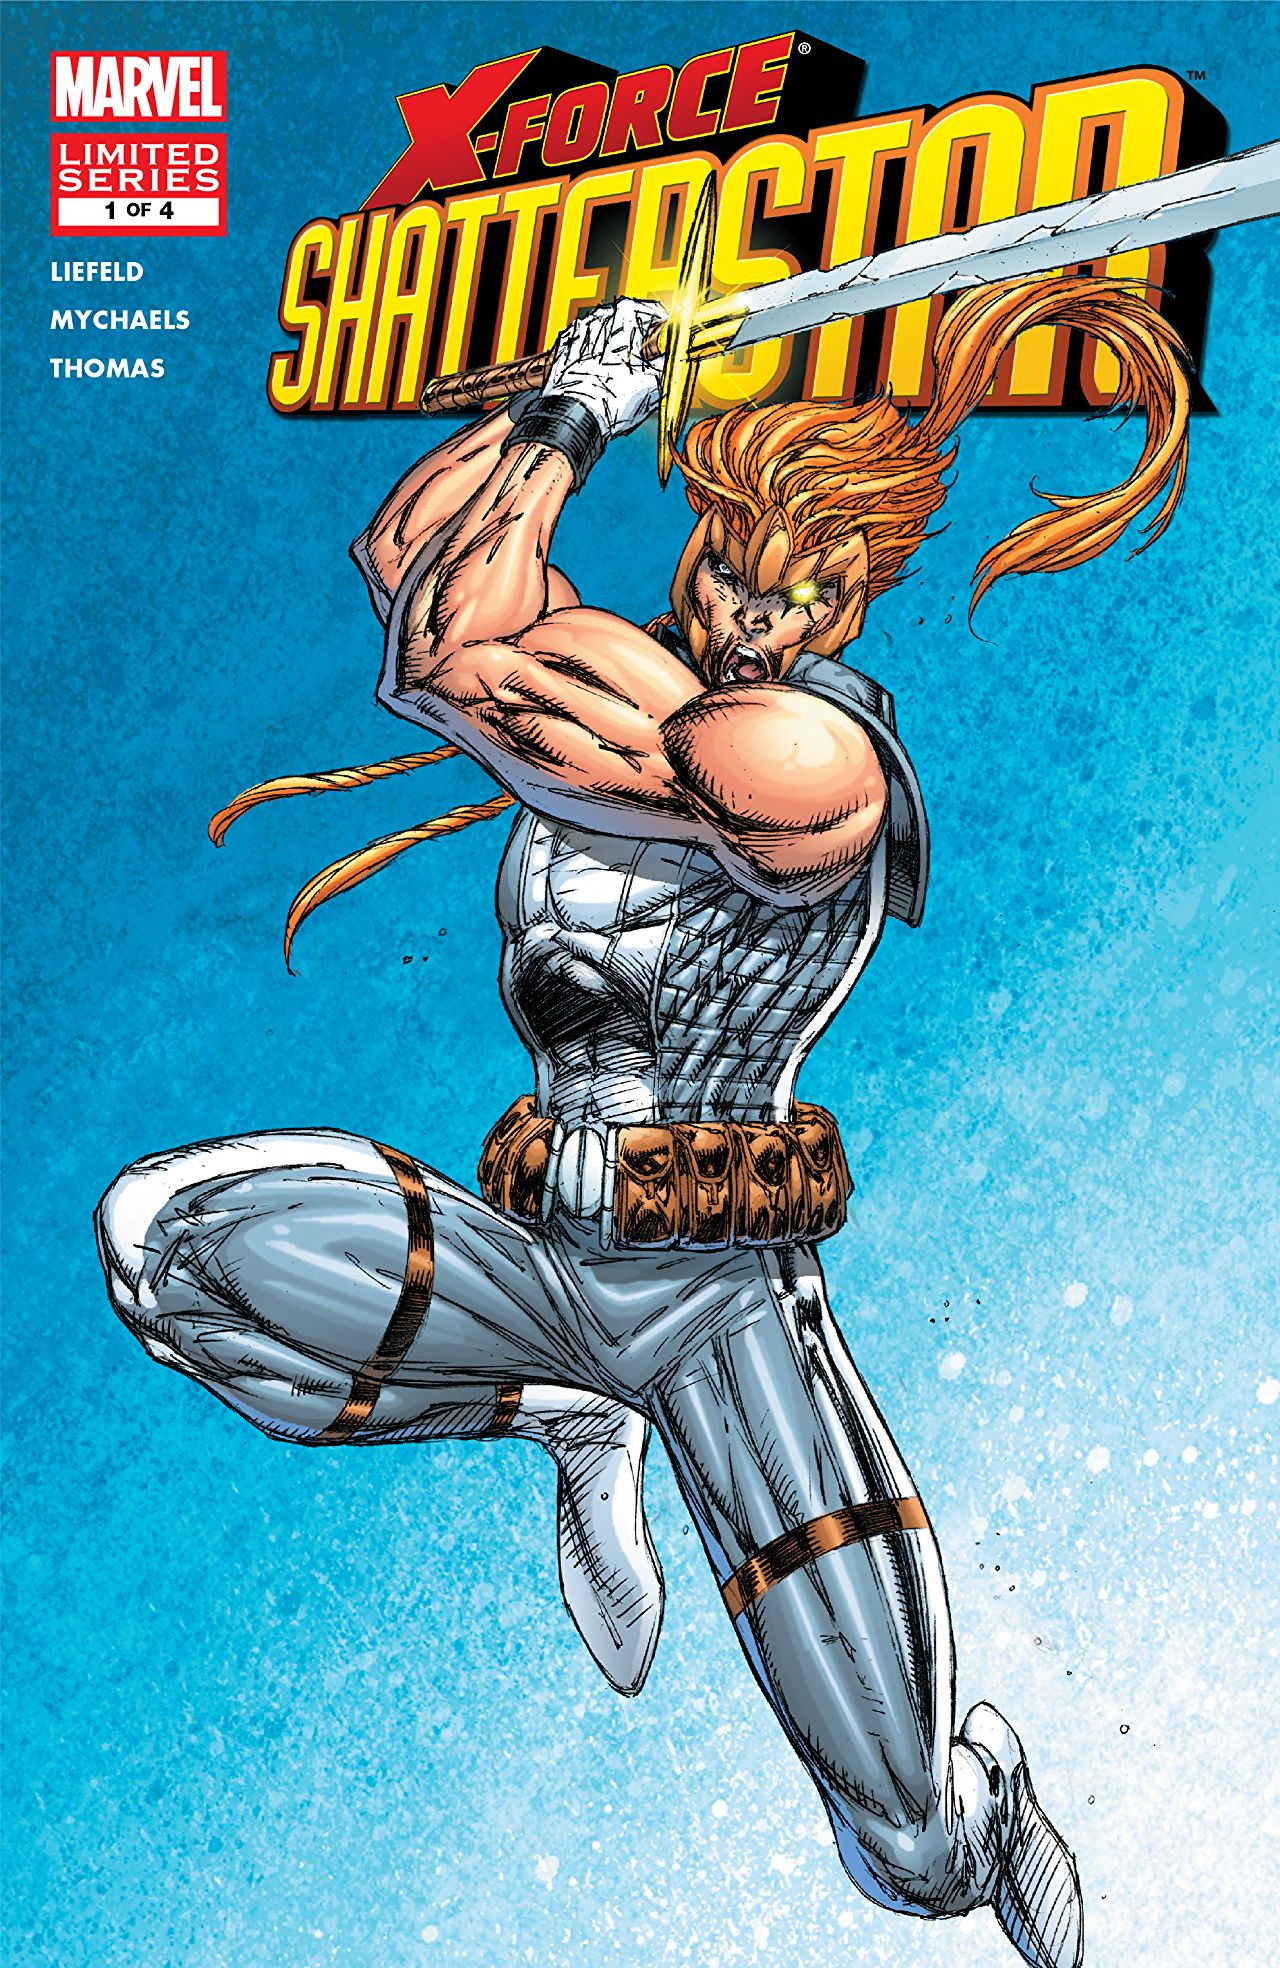 X-Force: Shatterstar Vol 1 1